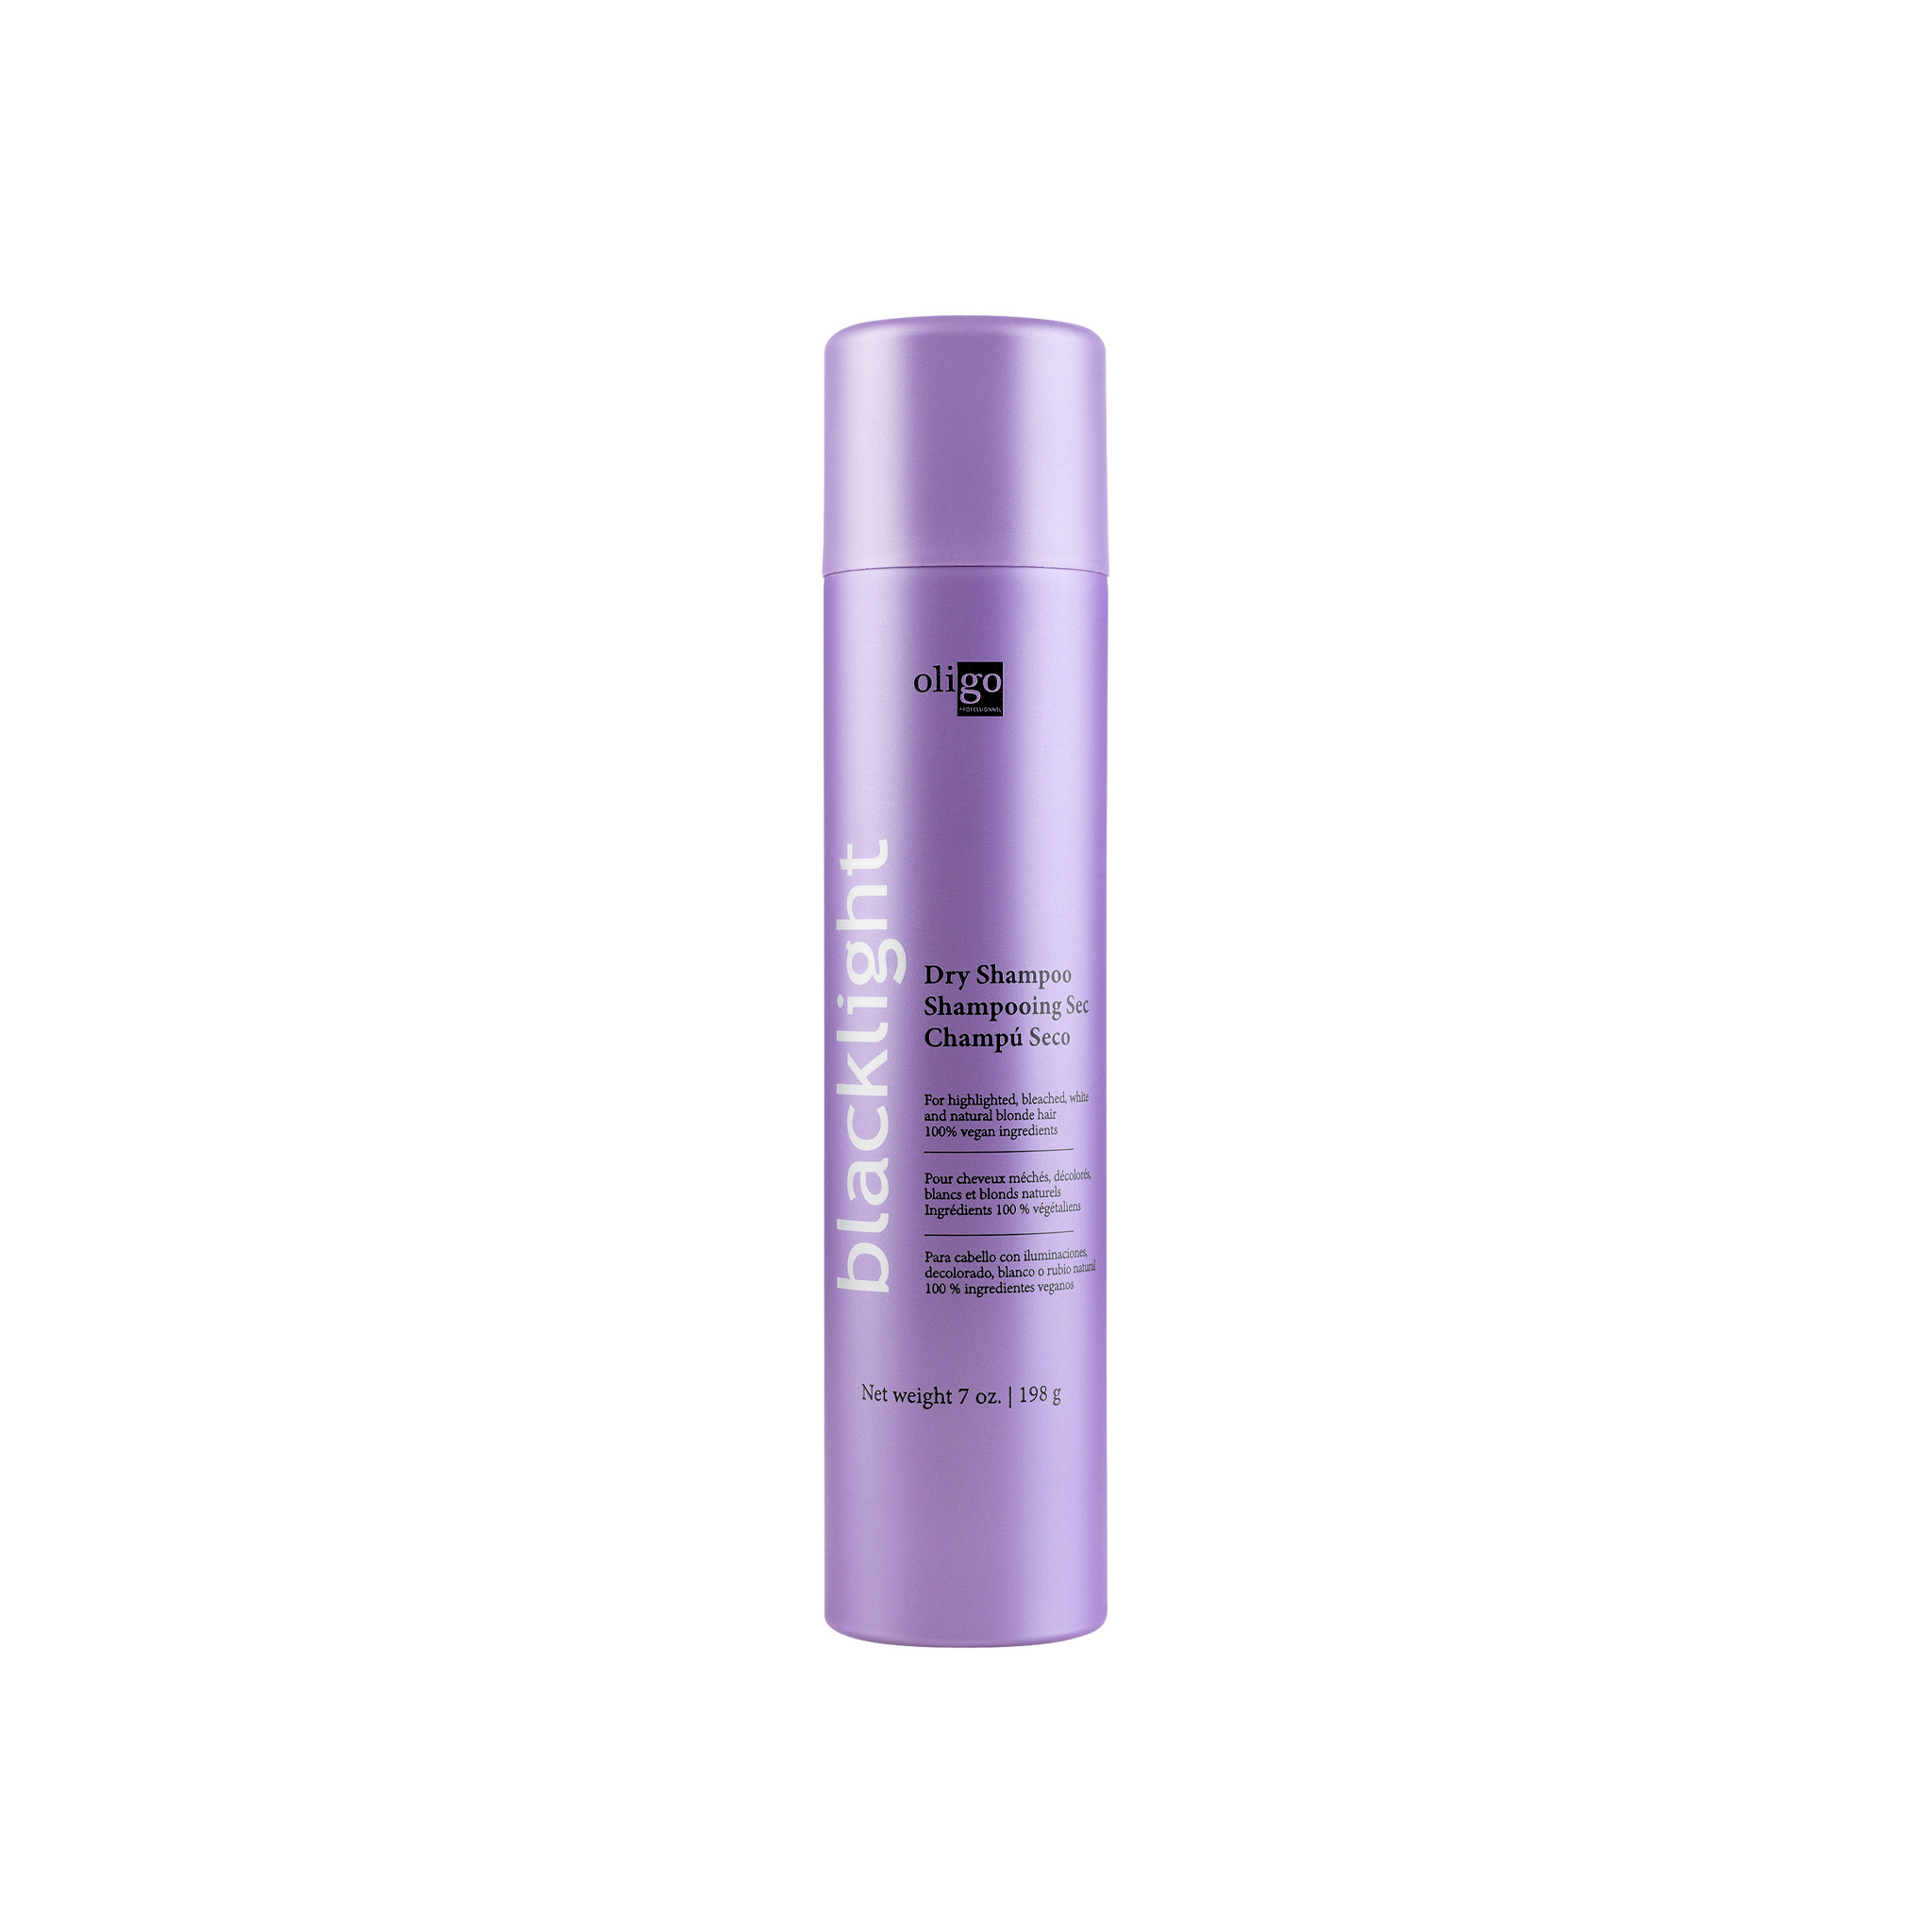 Oligo Pro Blacklight Dry Shampoo by Shop Salon Support - official distributor of Oligo Blacklight Professionnel Professional Hair Products, Hair Lightening System, Blonde Shampoo and Conditioner. Salon Support are Hair & Barber Barbershop Trade Wholesale Hairdressing Supplies Melbourne Australia